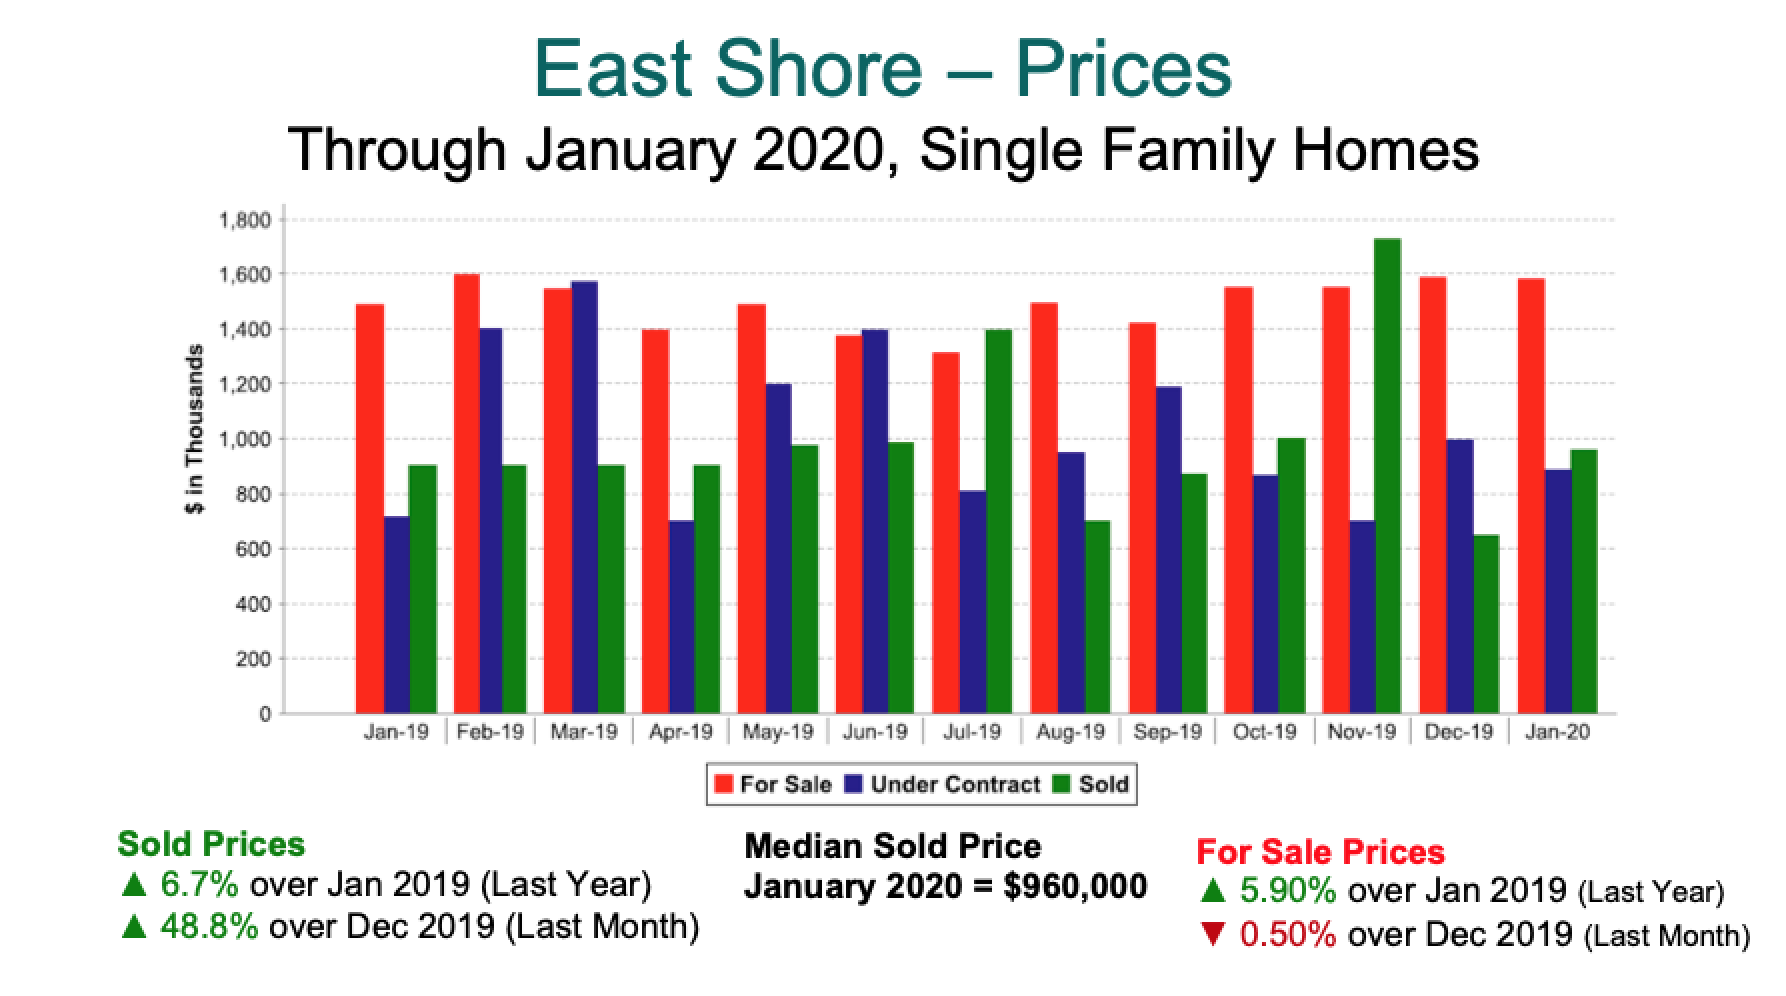 Lake Tahoe East Shore Home Prices 2019-Jan 2020